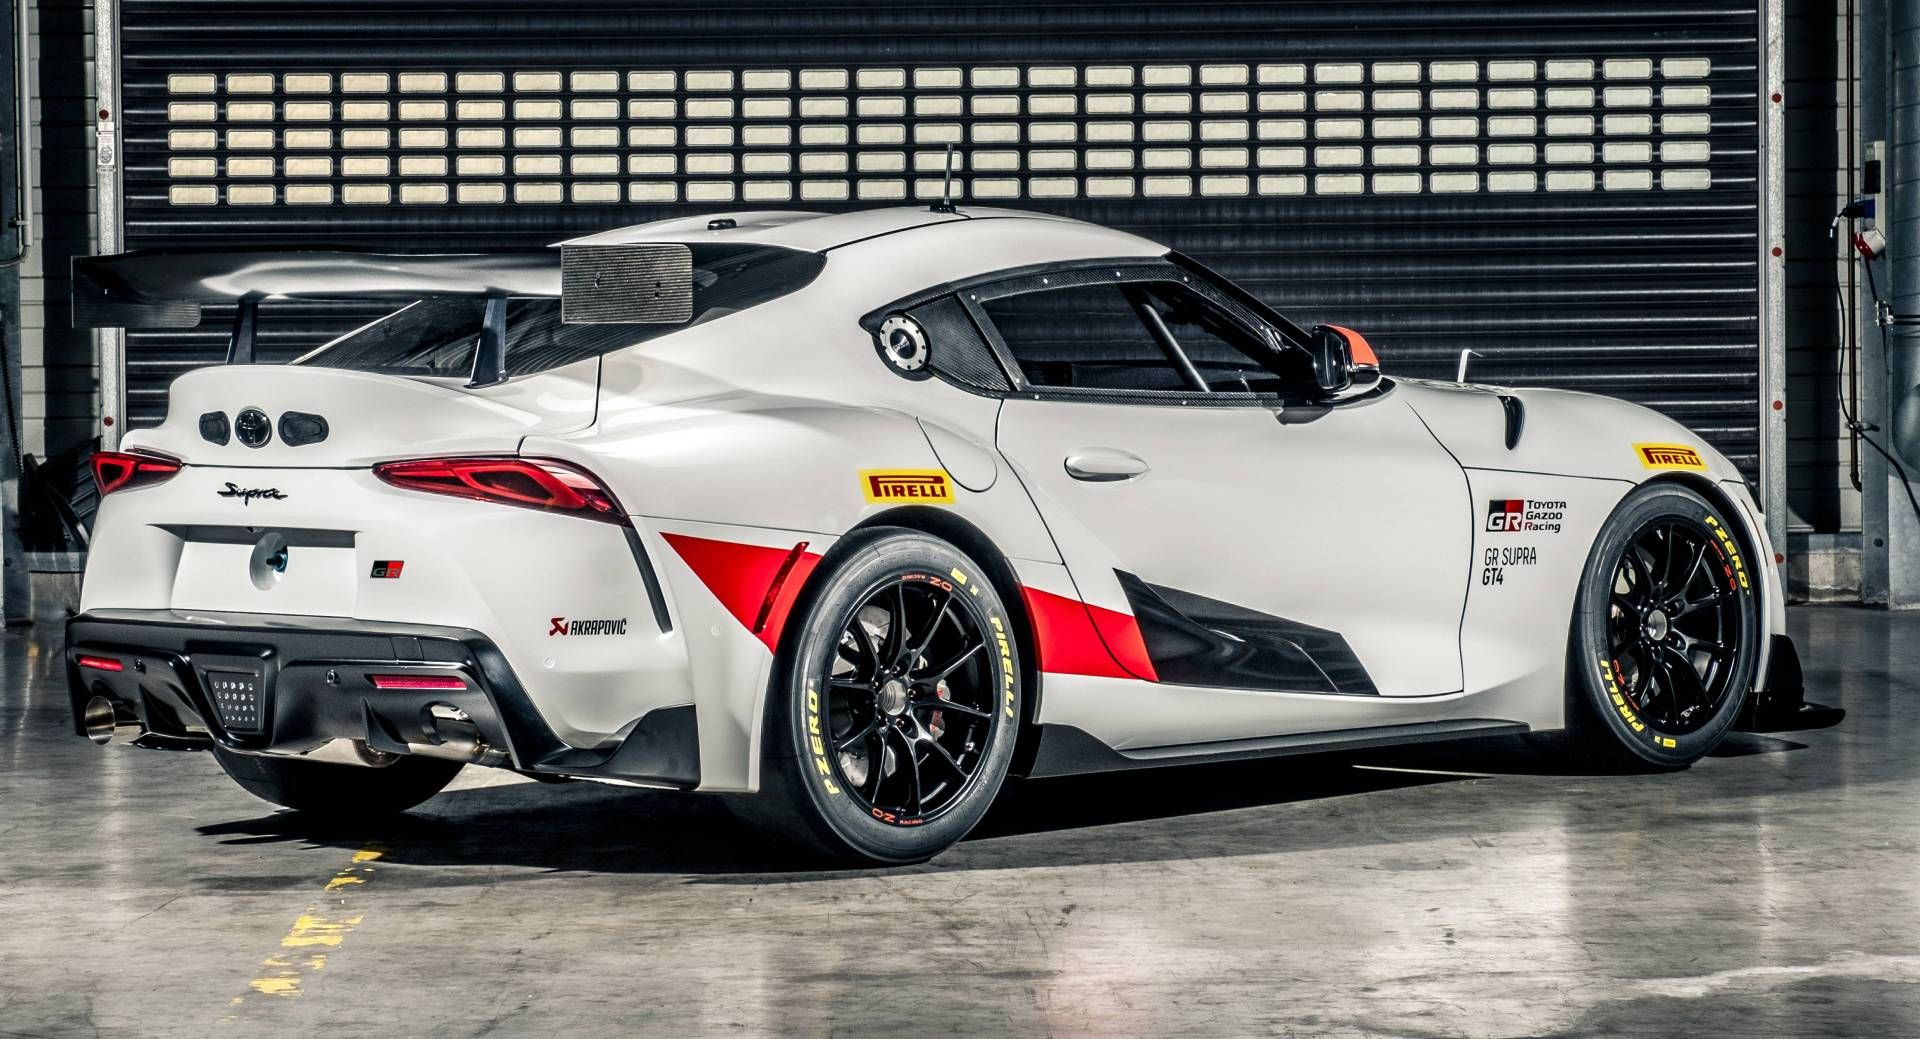 Toyota Reveals Gr Supra Gt4 For Customer Teams Debut Set For 2020 Carscoops Classic Racing Cars Toyota Supra